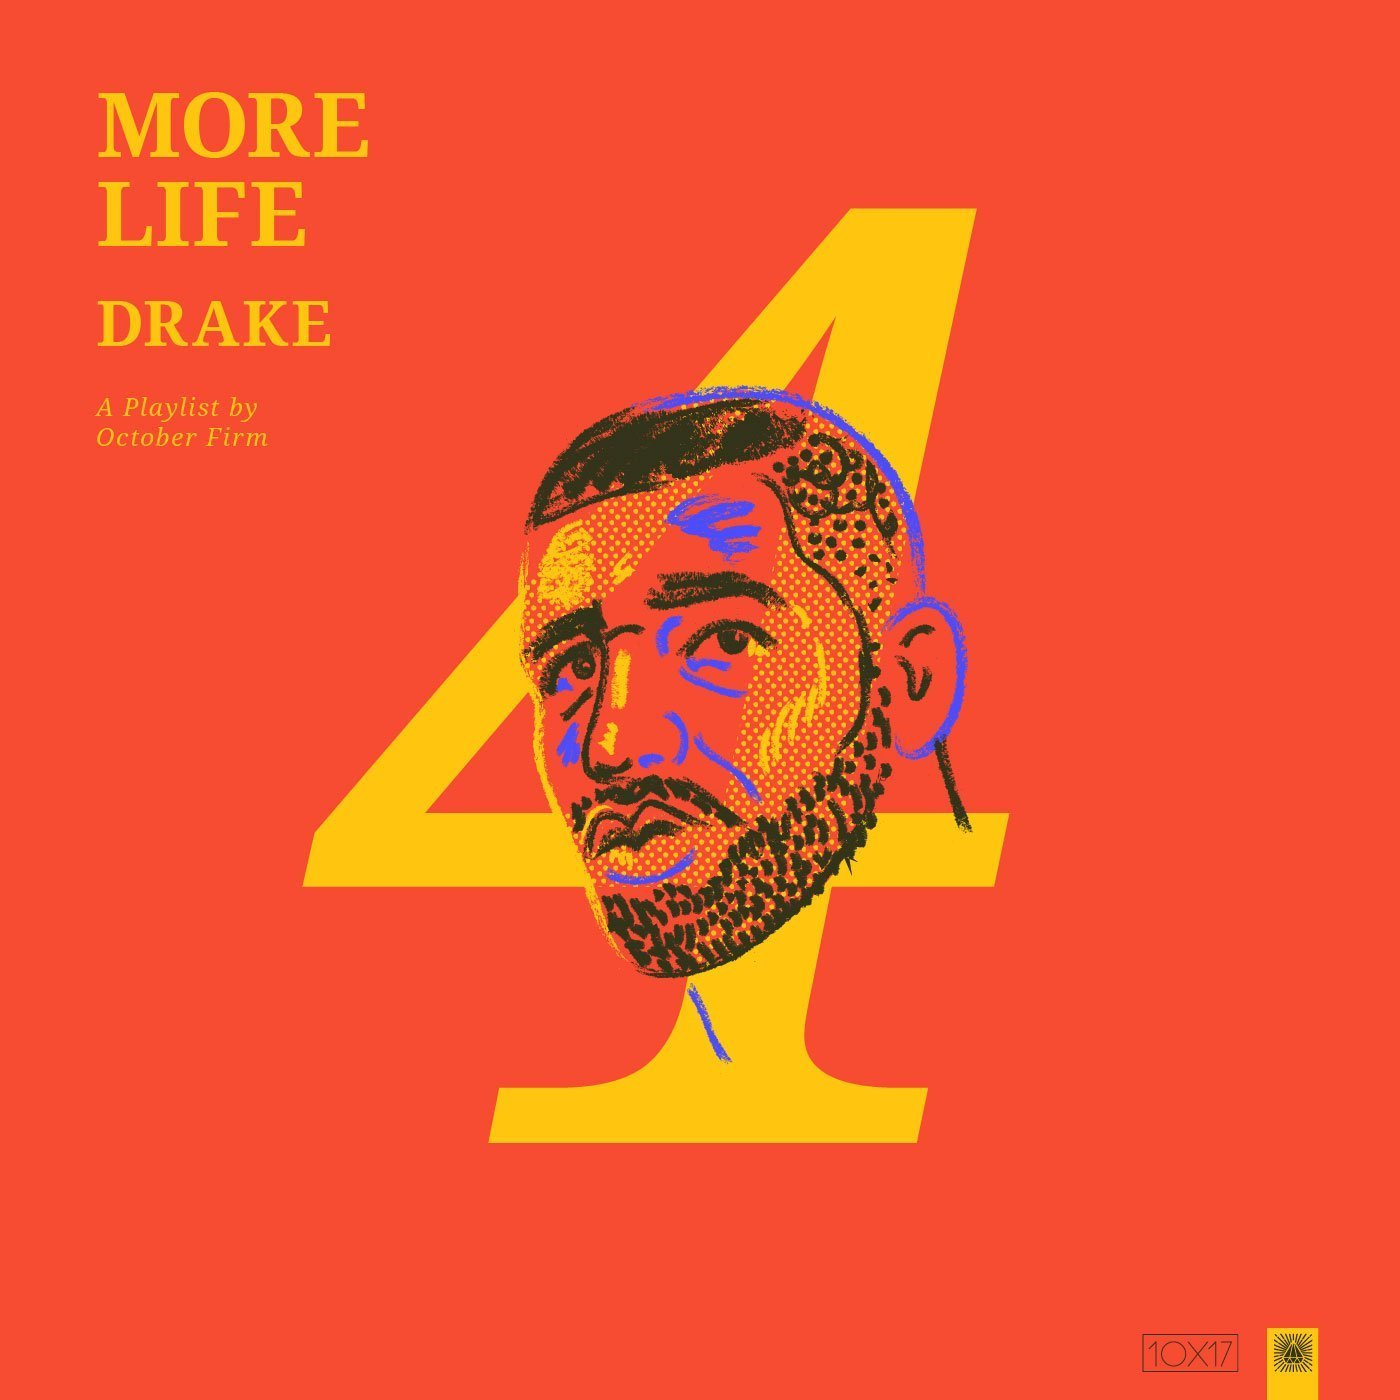 Drake Album Cover Reimagined by Amy Hood - number 4 with Drake's face